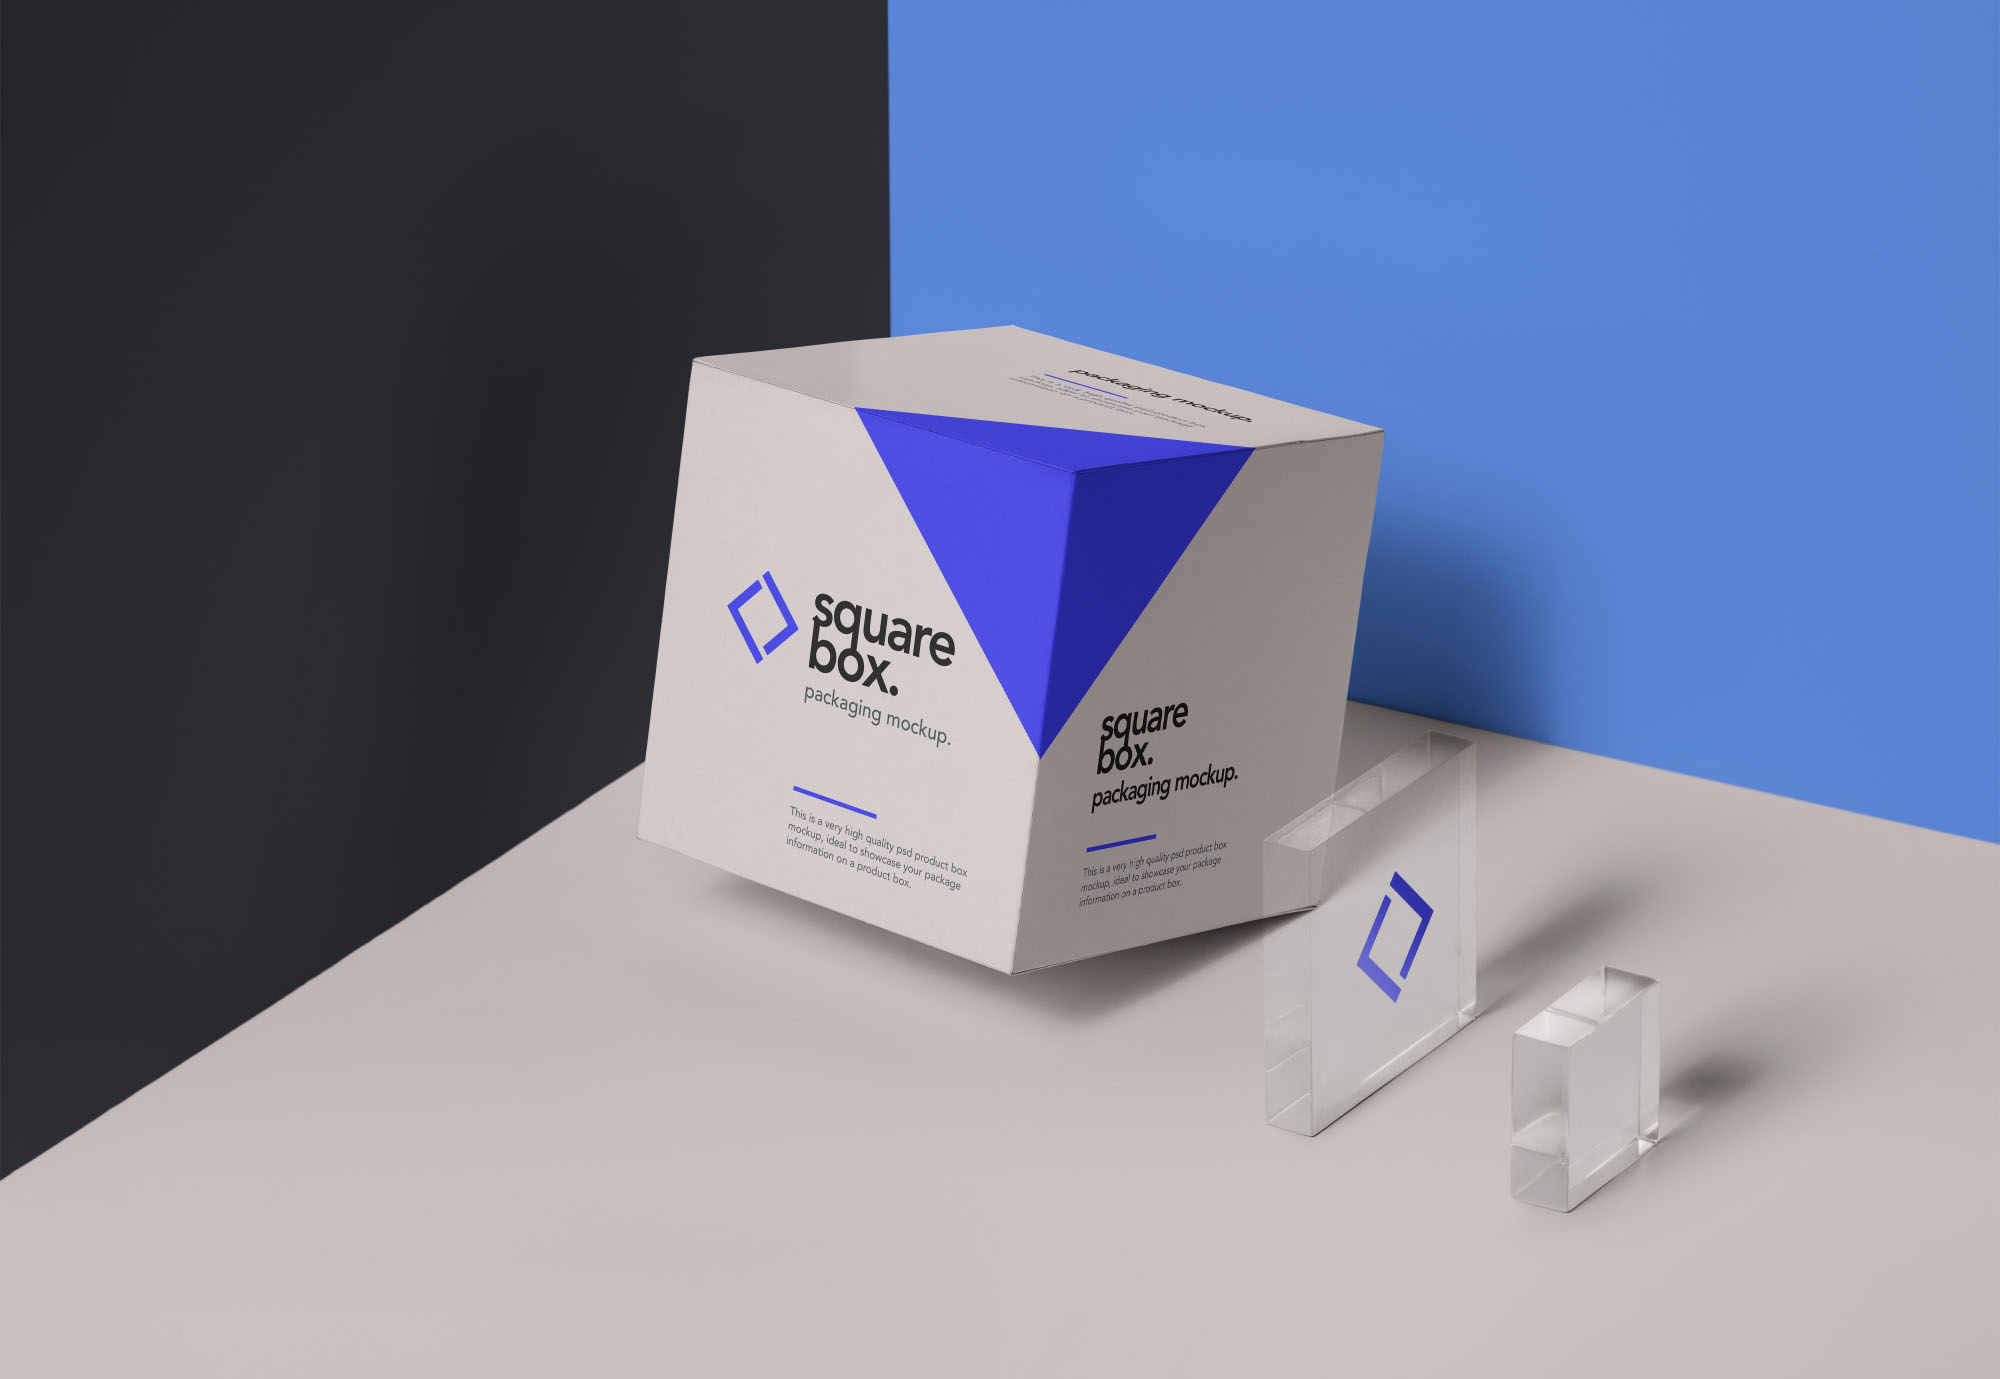 square box package mockup psd